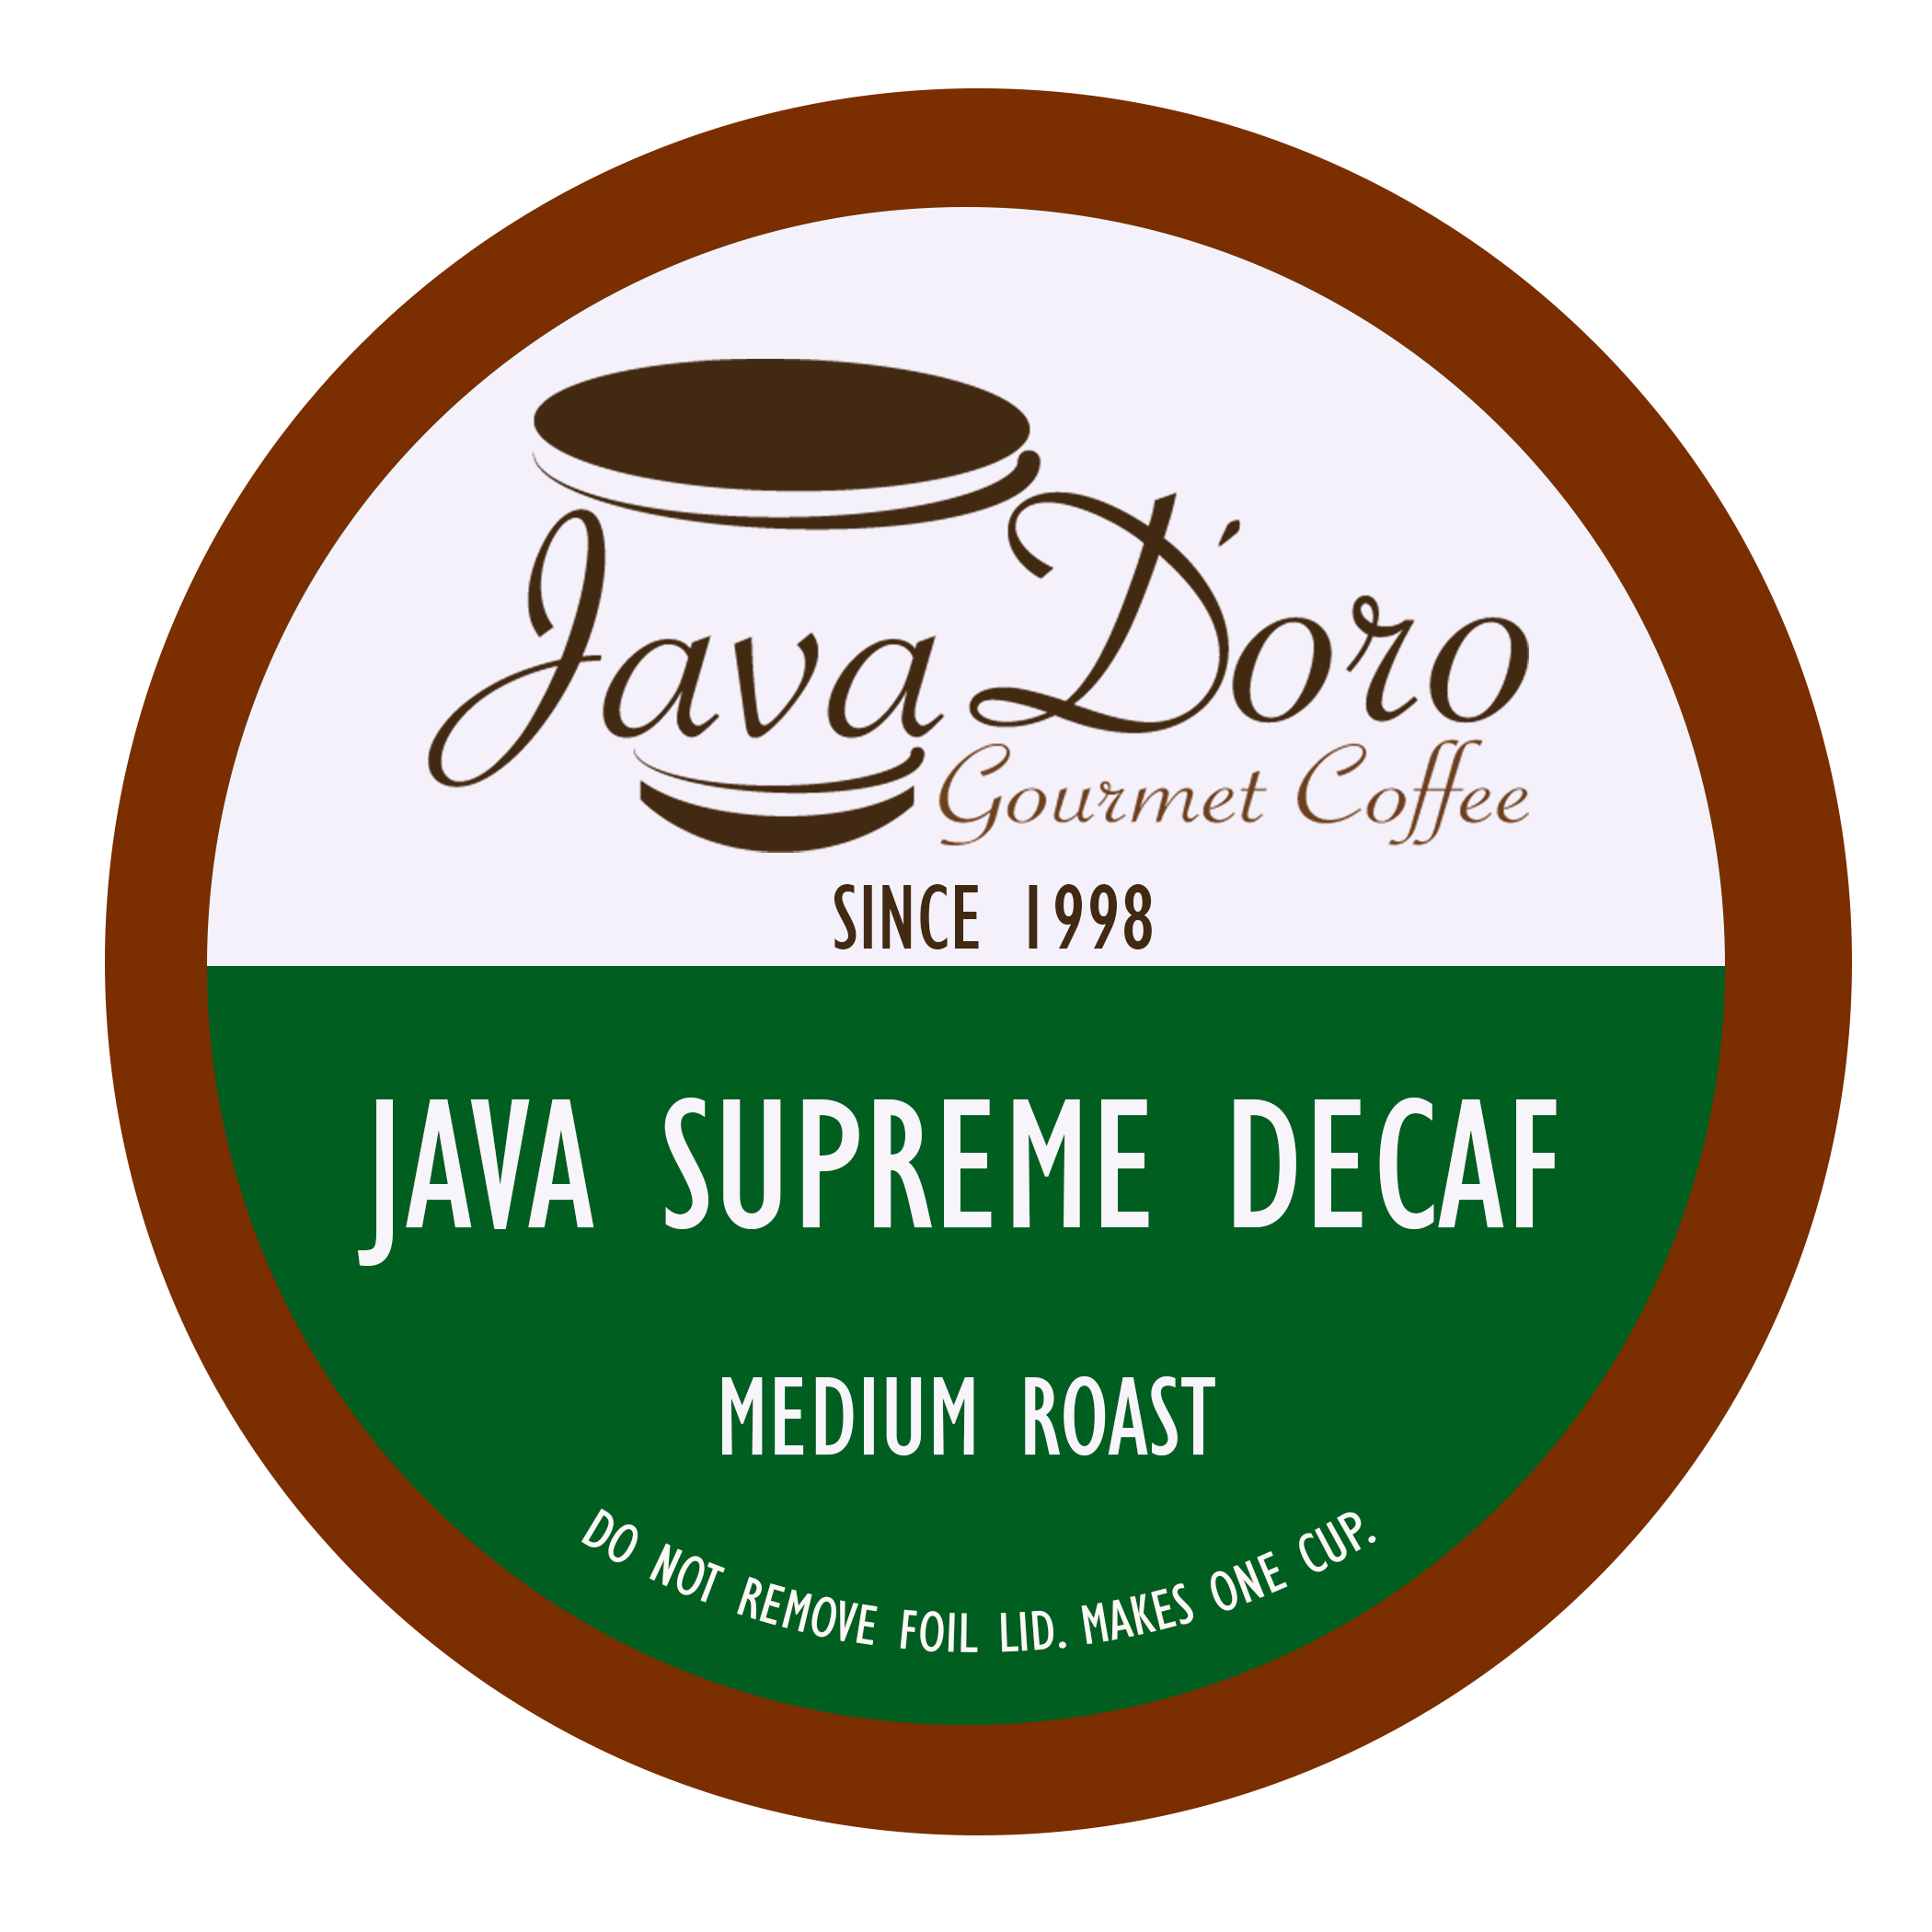 Java Supreme Decaf | Java D'oro Gourmet Coffee